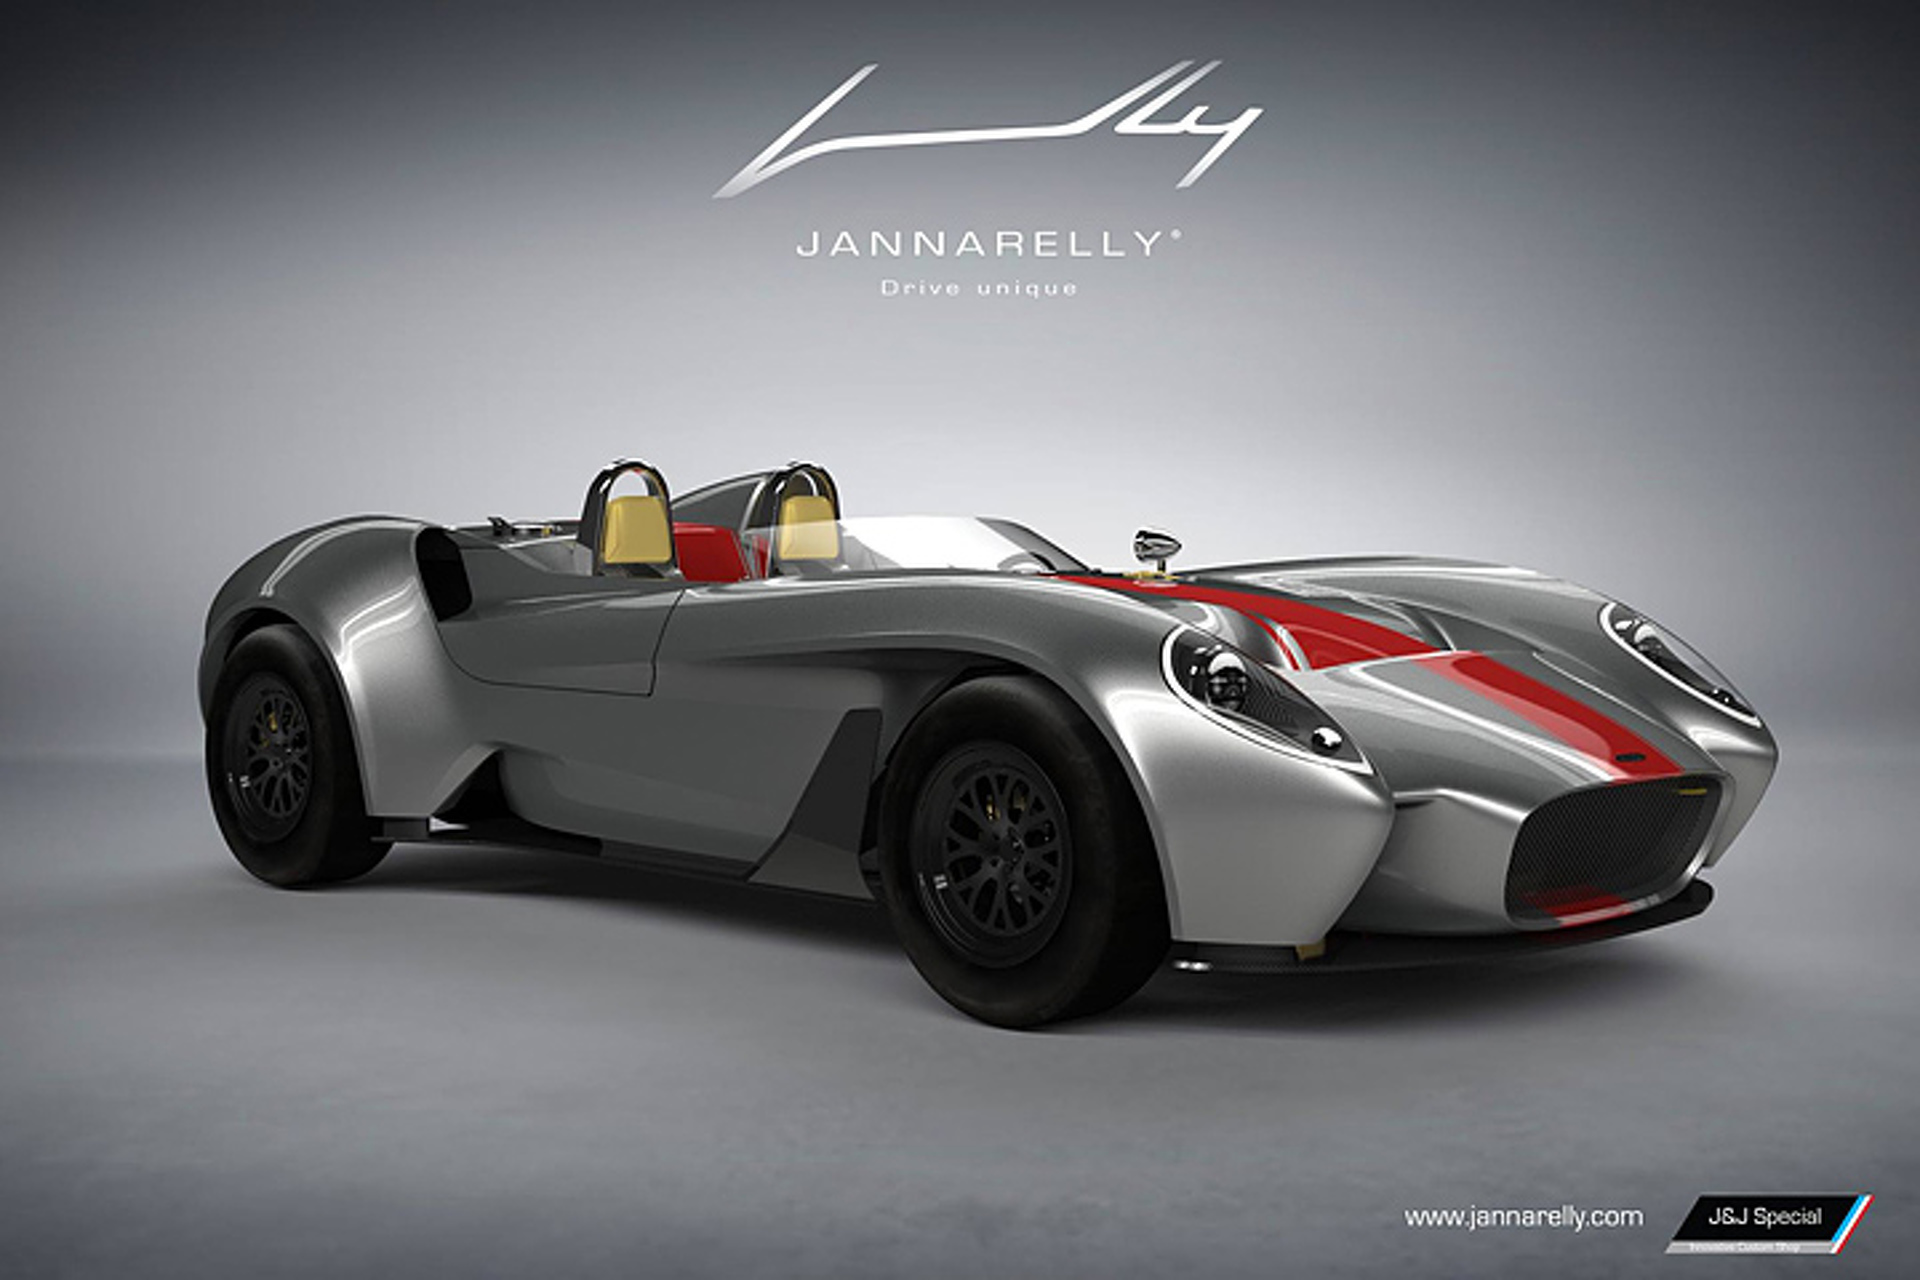 Designer Of 3 4 Million Lykan Supercar To Build 55 000 Retro Sports Car